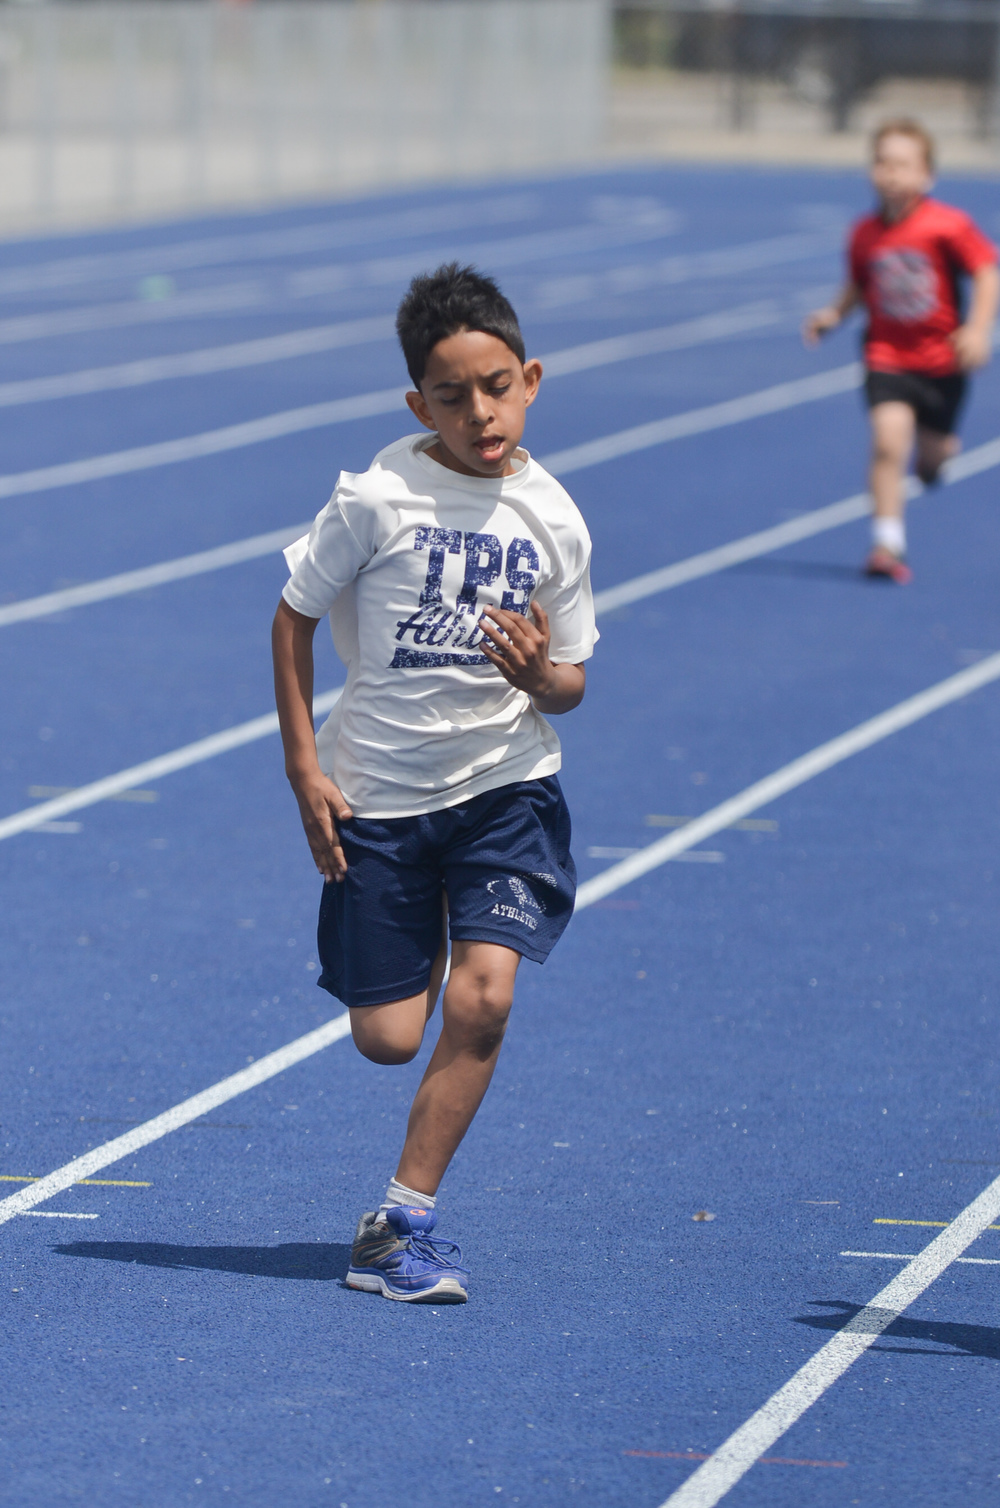 Track and FIeld - Ching 2015 - U10 (9 of 9).jpg